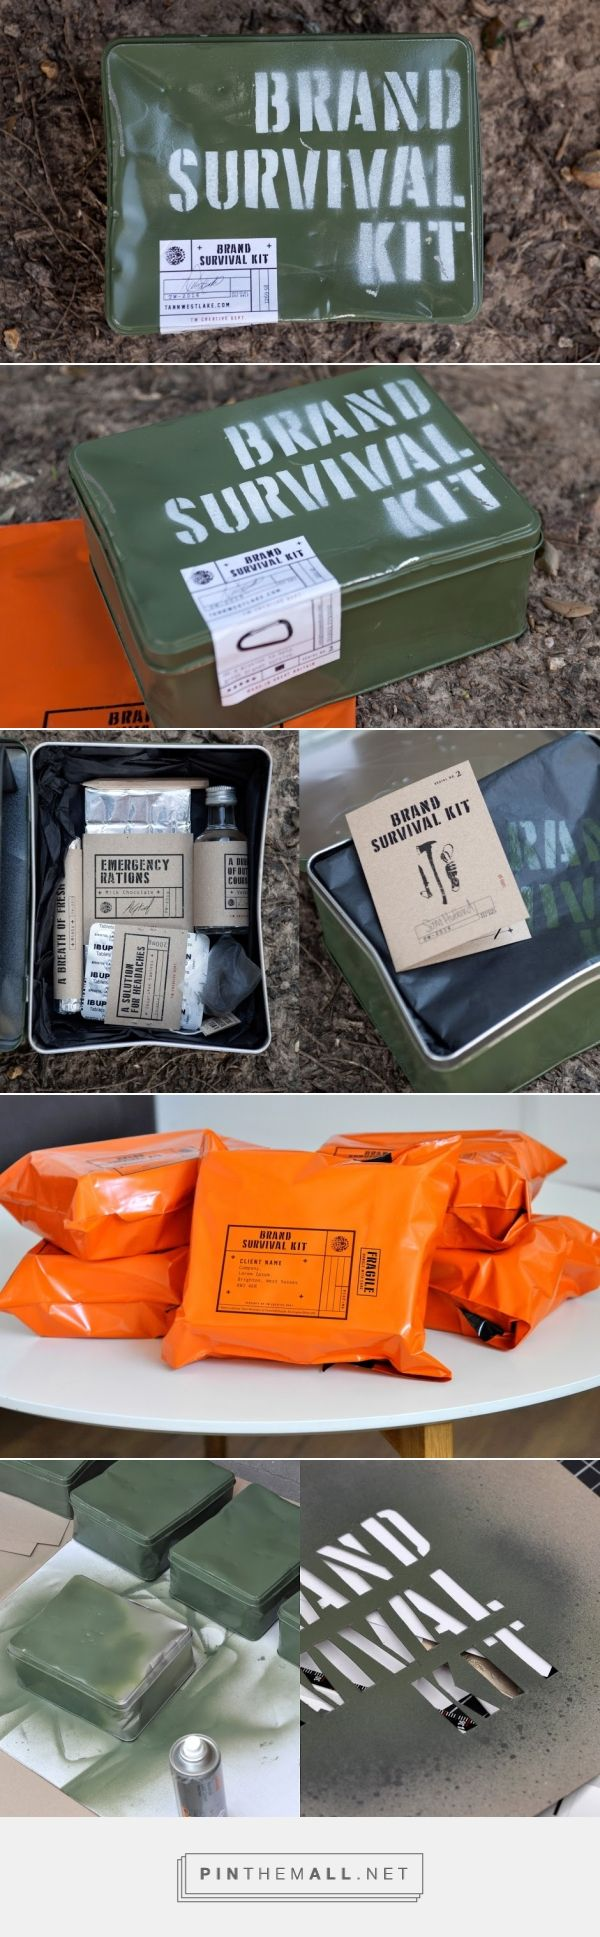 Do you need one? Brand Survival Kit design by Tann Westlake (UK) - http://www.packagingoftheworld.com/2016/06/brand-survival-kit.html